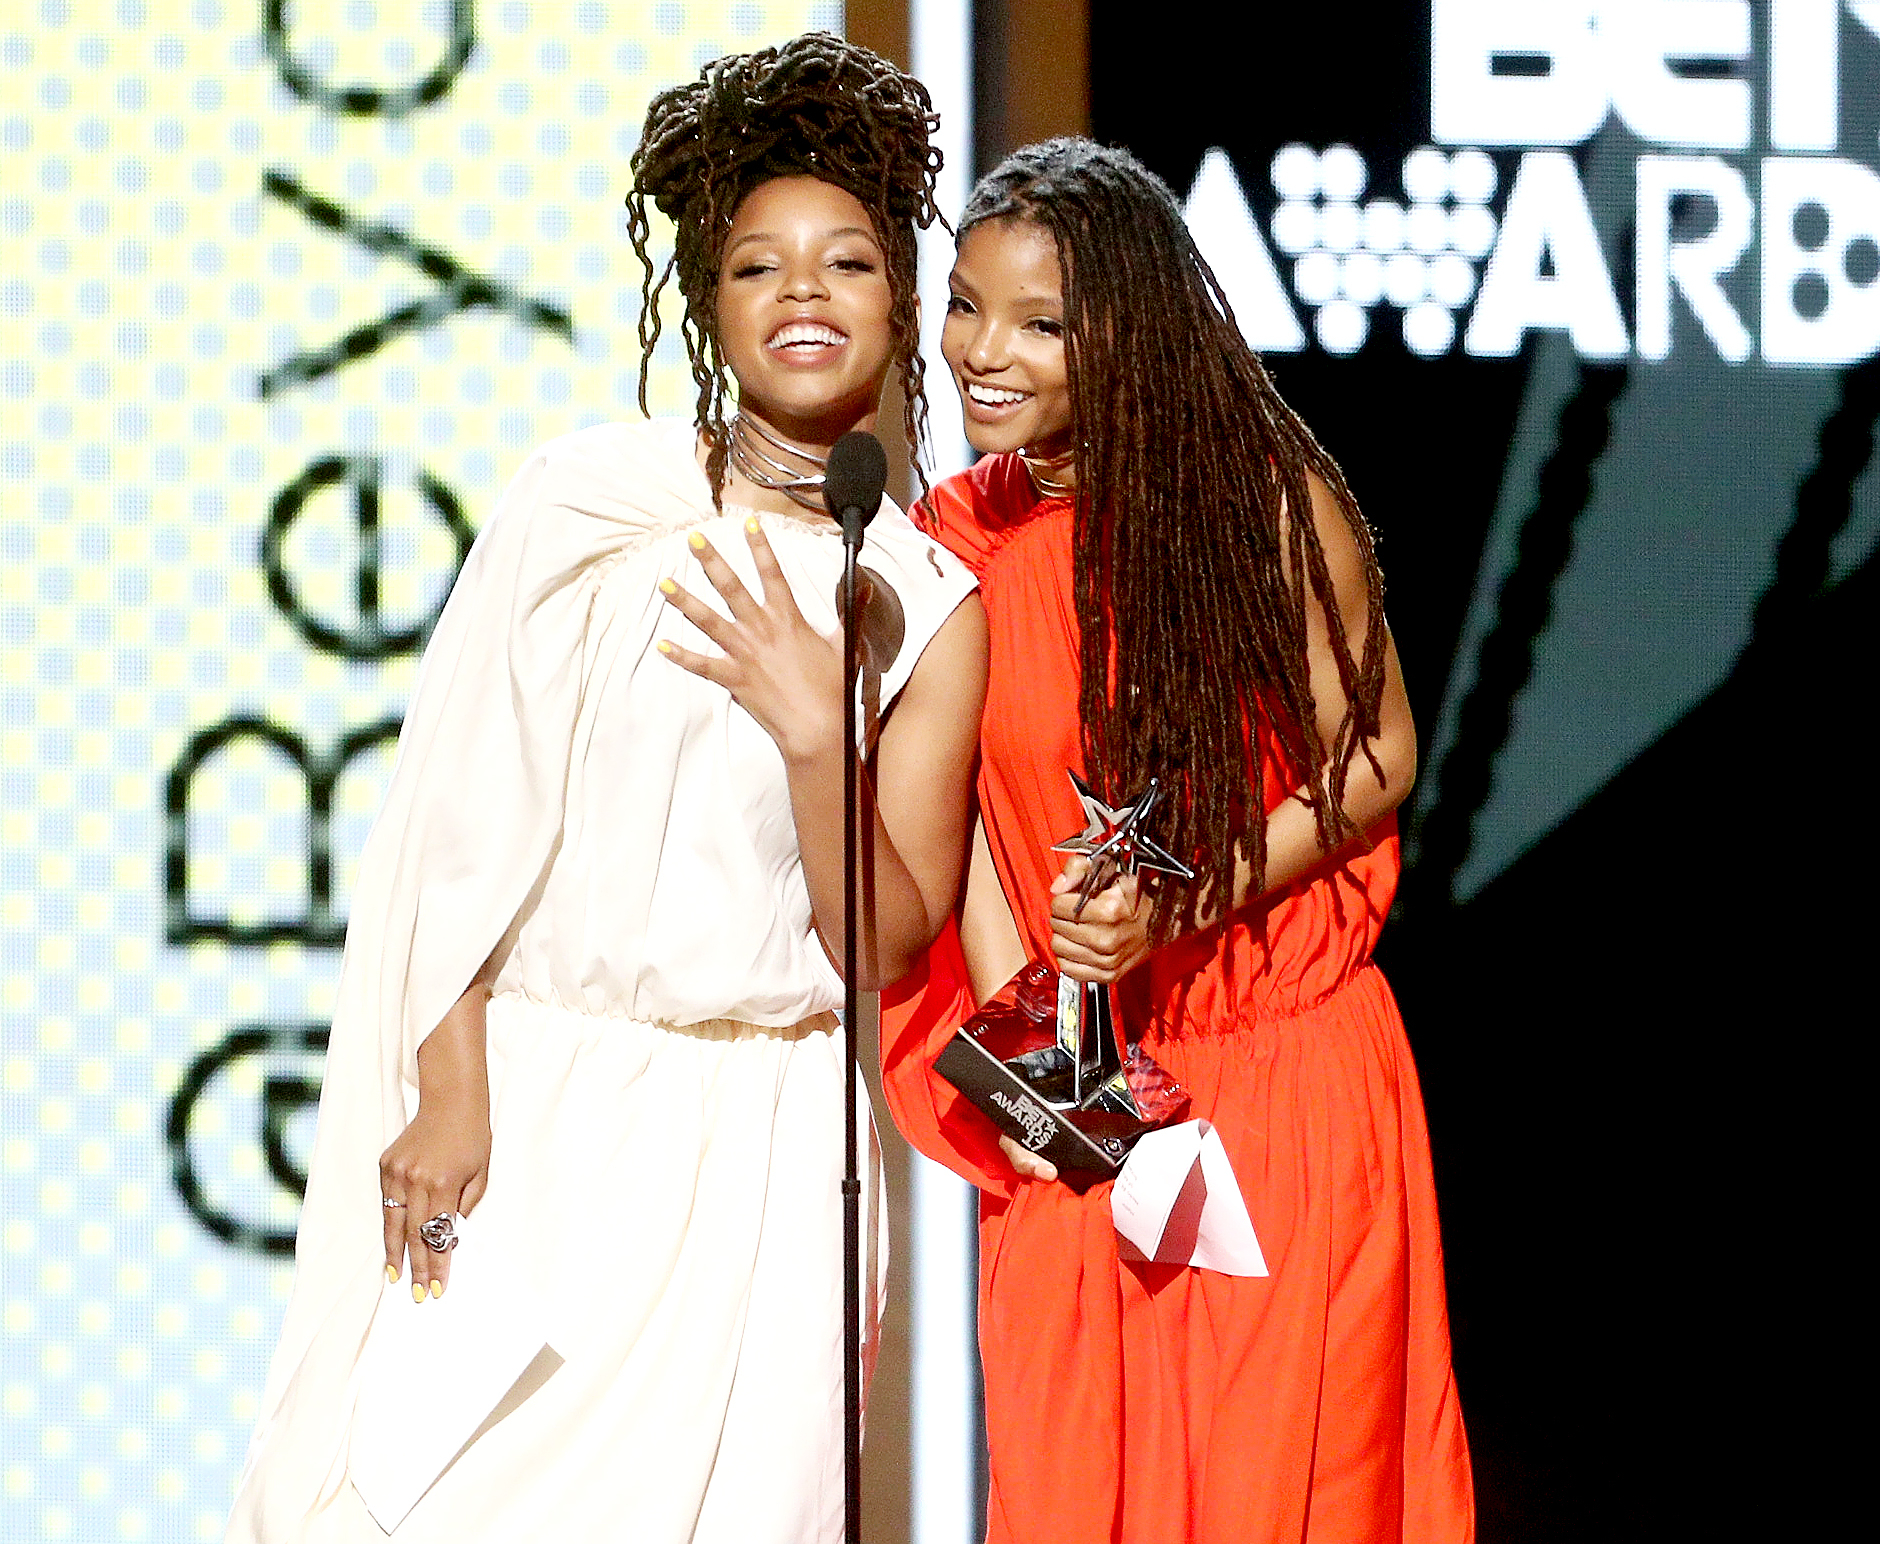 Chloe Bailey and Halle Bailey of Chloe x Halle accept Coca-Cola Viewer's Choice Award on behalf of Beyonce onstage at 2017 BET Awards at Microsoft Theater on June 25, 2017 in Los Angeles, California.